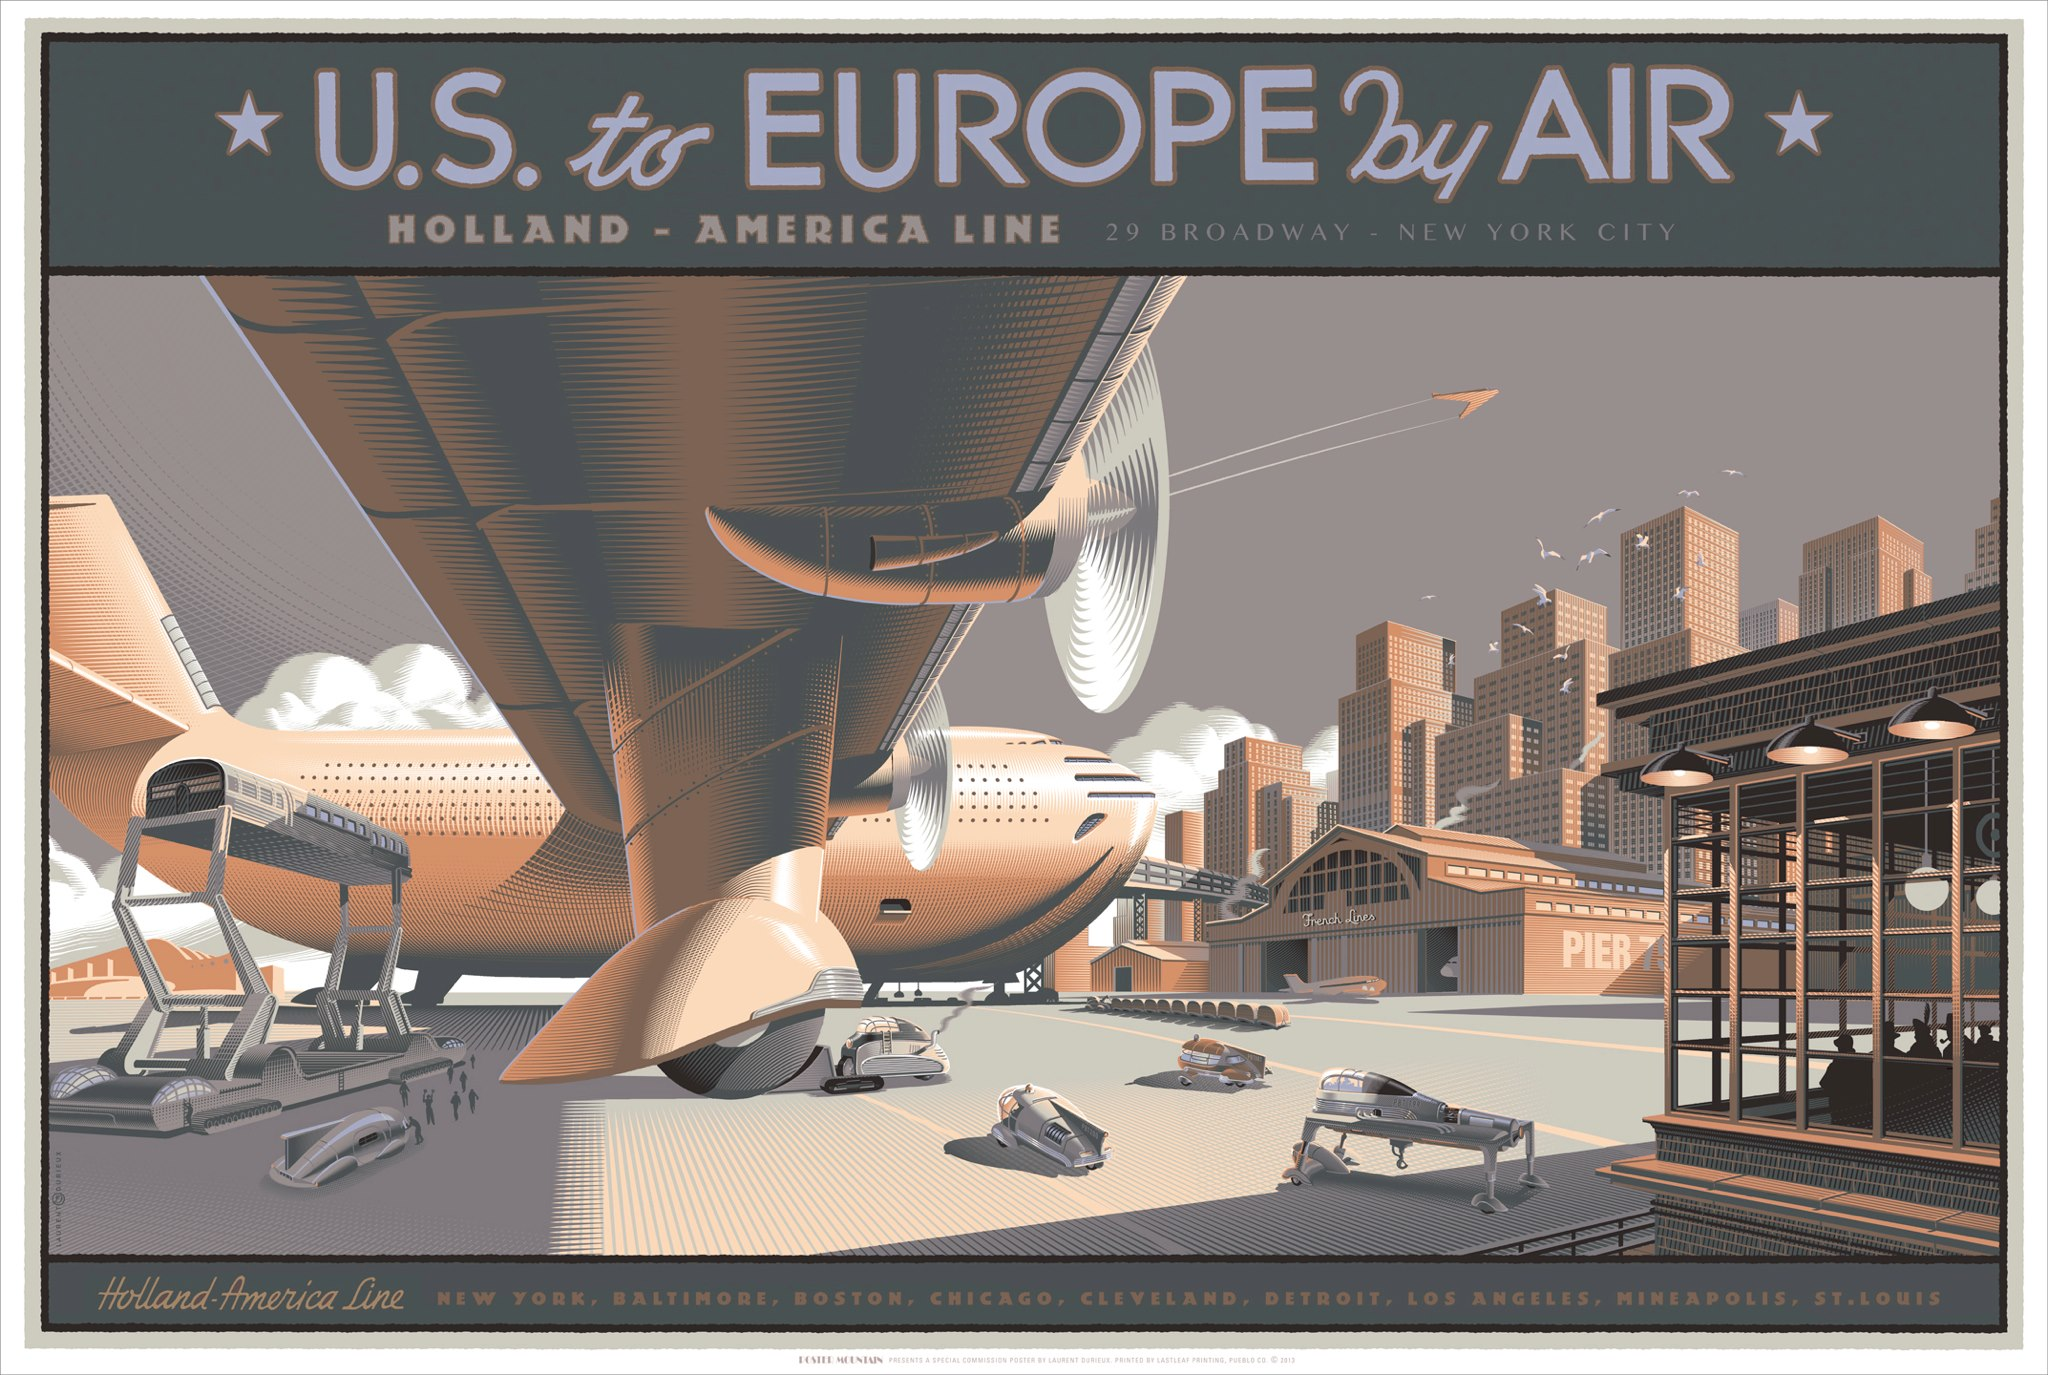 US to EUROPE by AIR commissioned by PBT in 2013